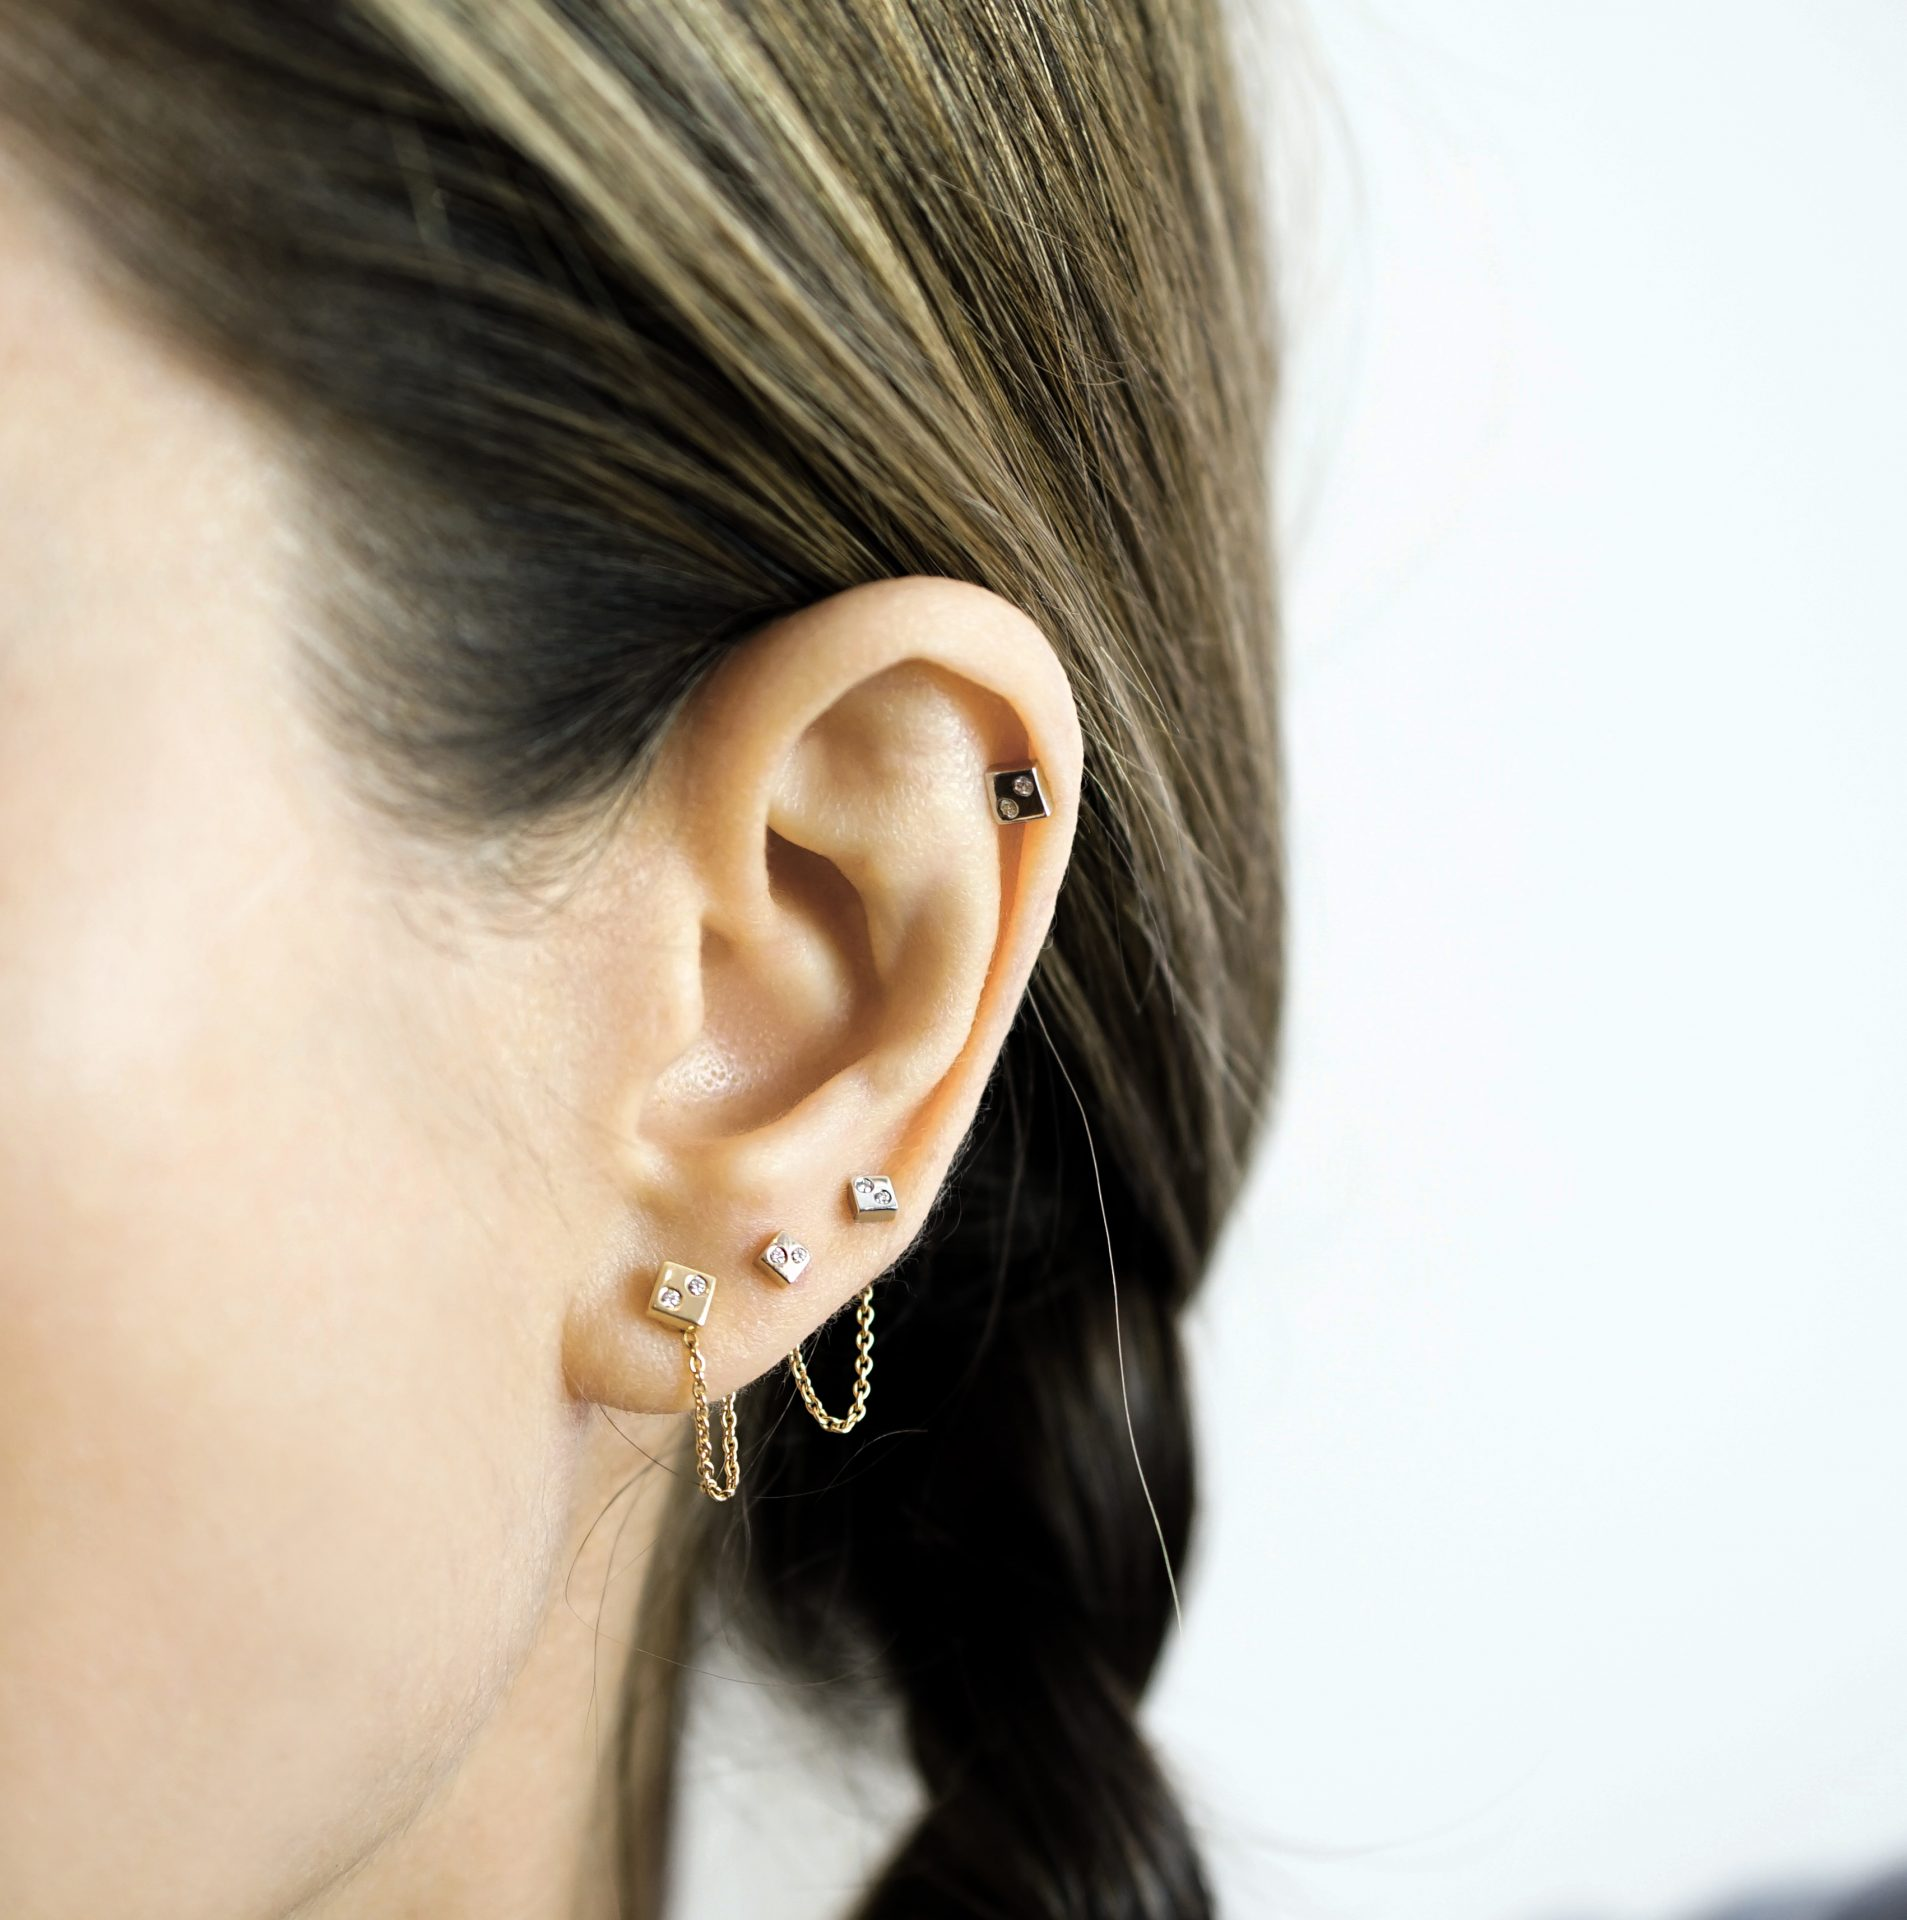 Minimalist-geometric-luxury-screw-back-cartilage-earring-by-British-designer-Lena-Cohen